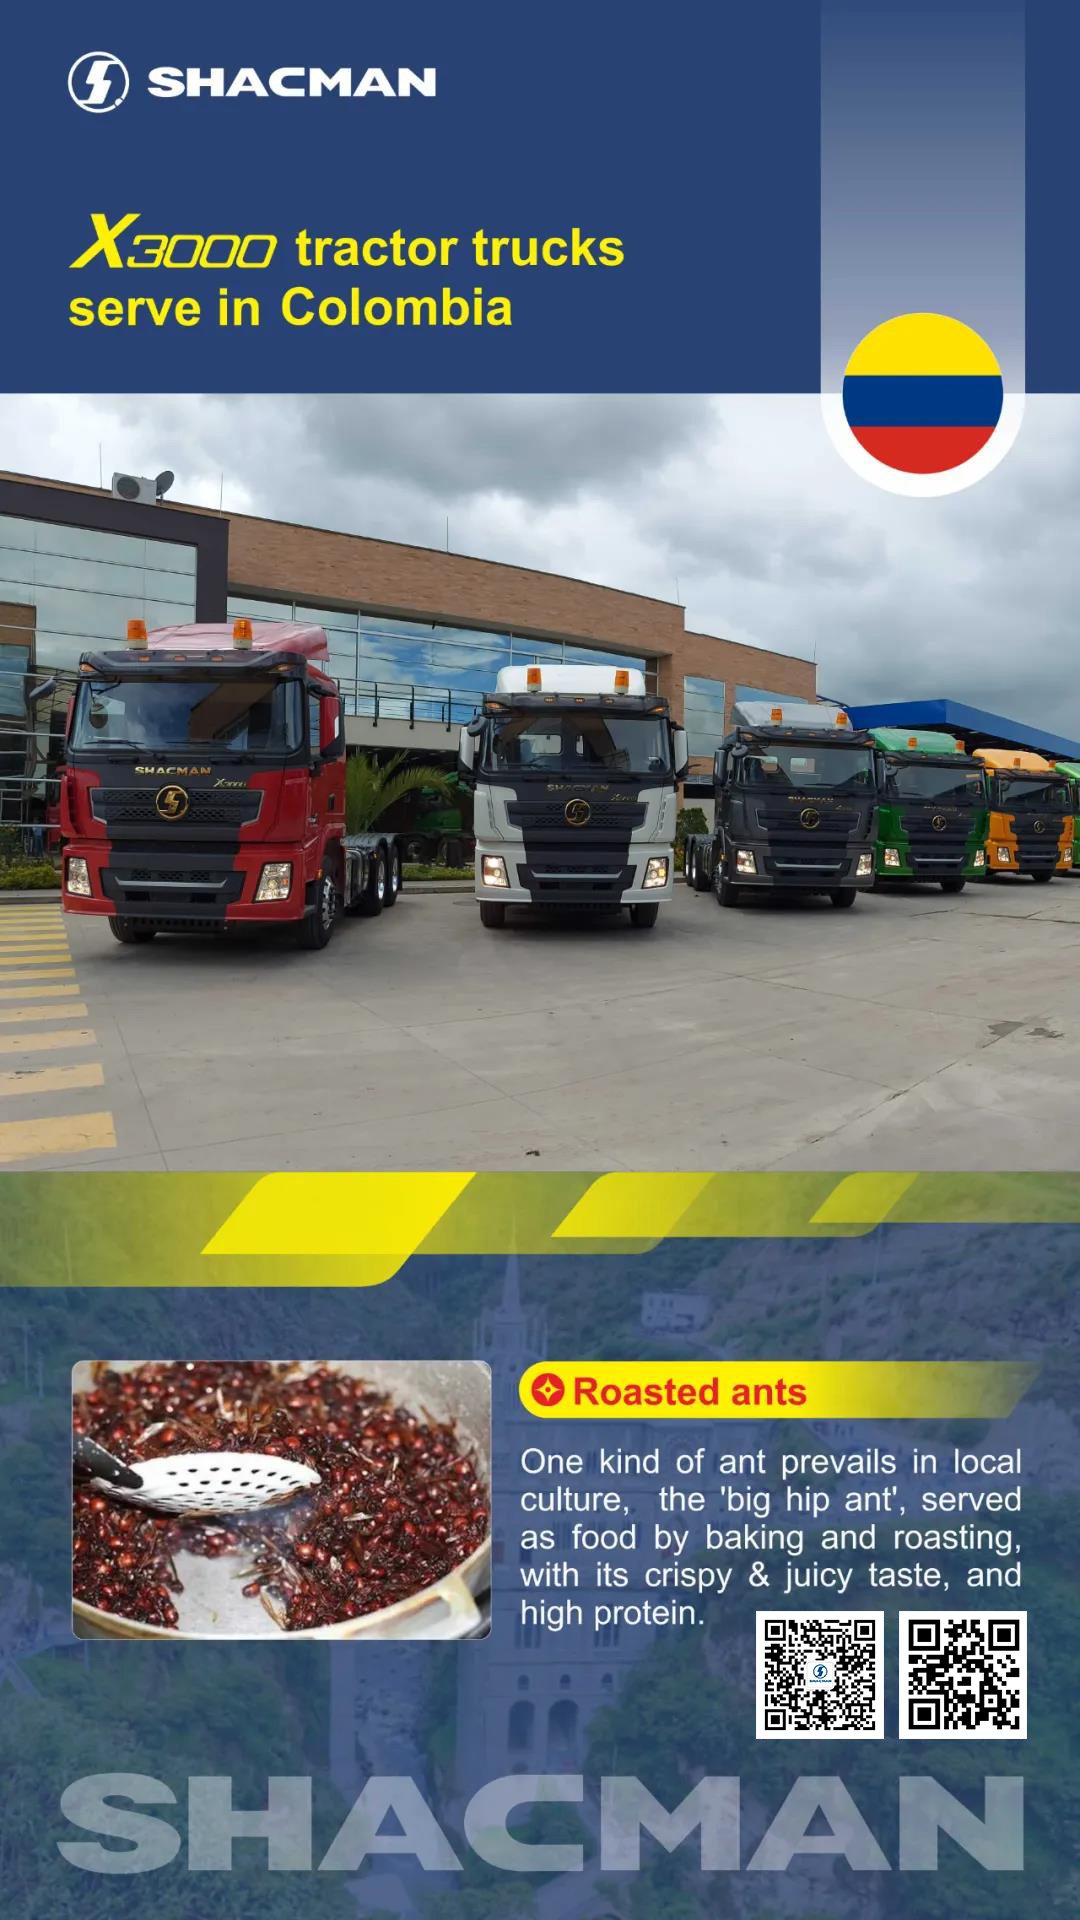 SHACMAN X3000 Tractor Trucks Serve in Colombia